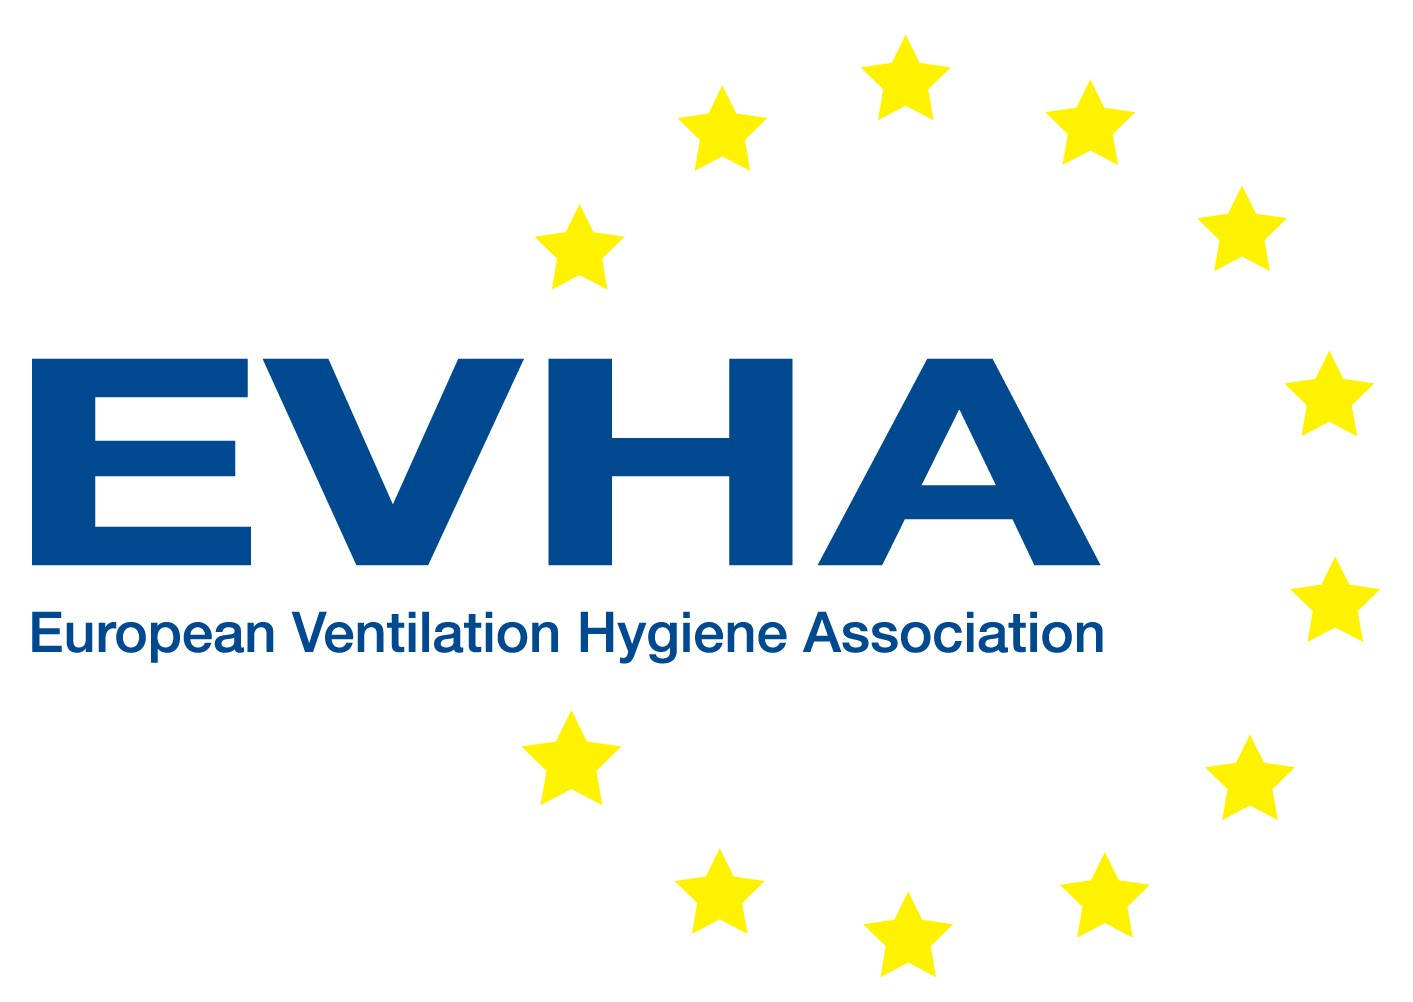 logo for European Ventilation Hygiene Association